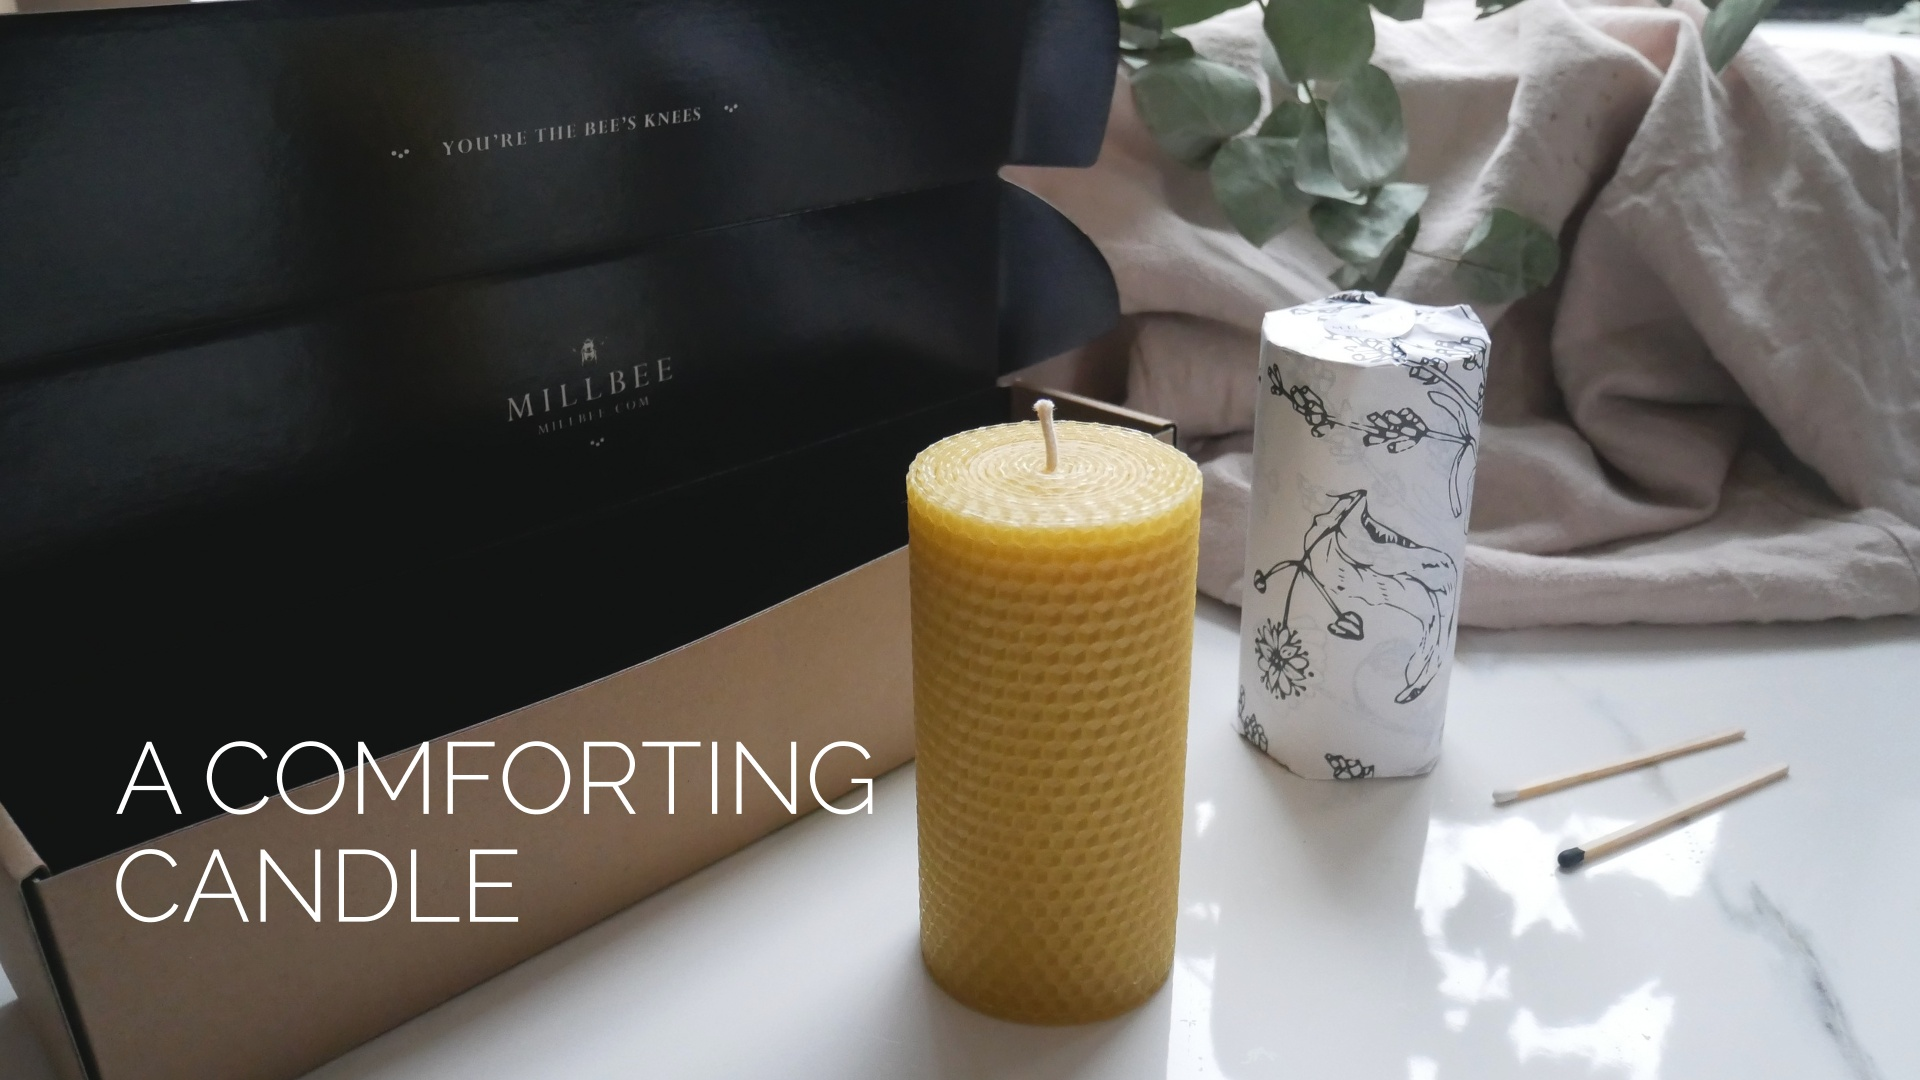 Mindful candle product page